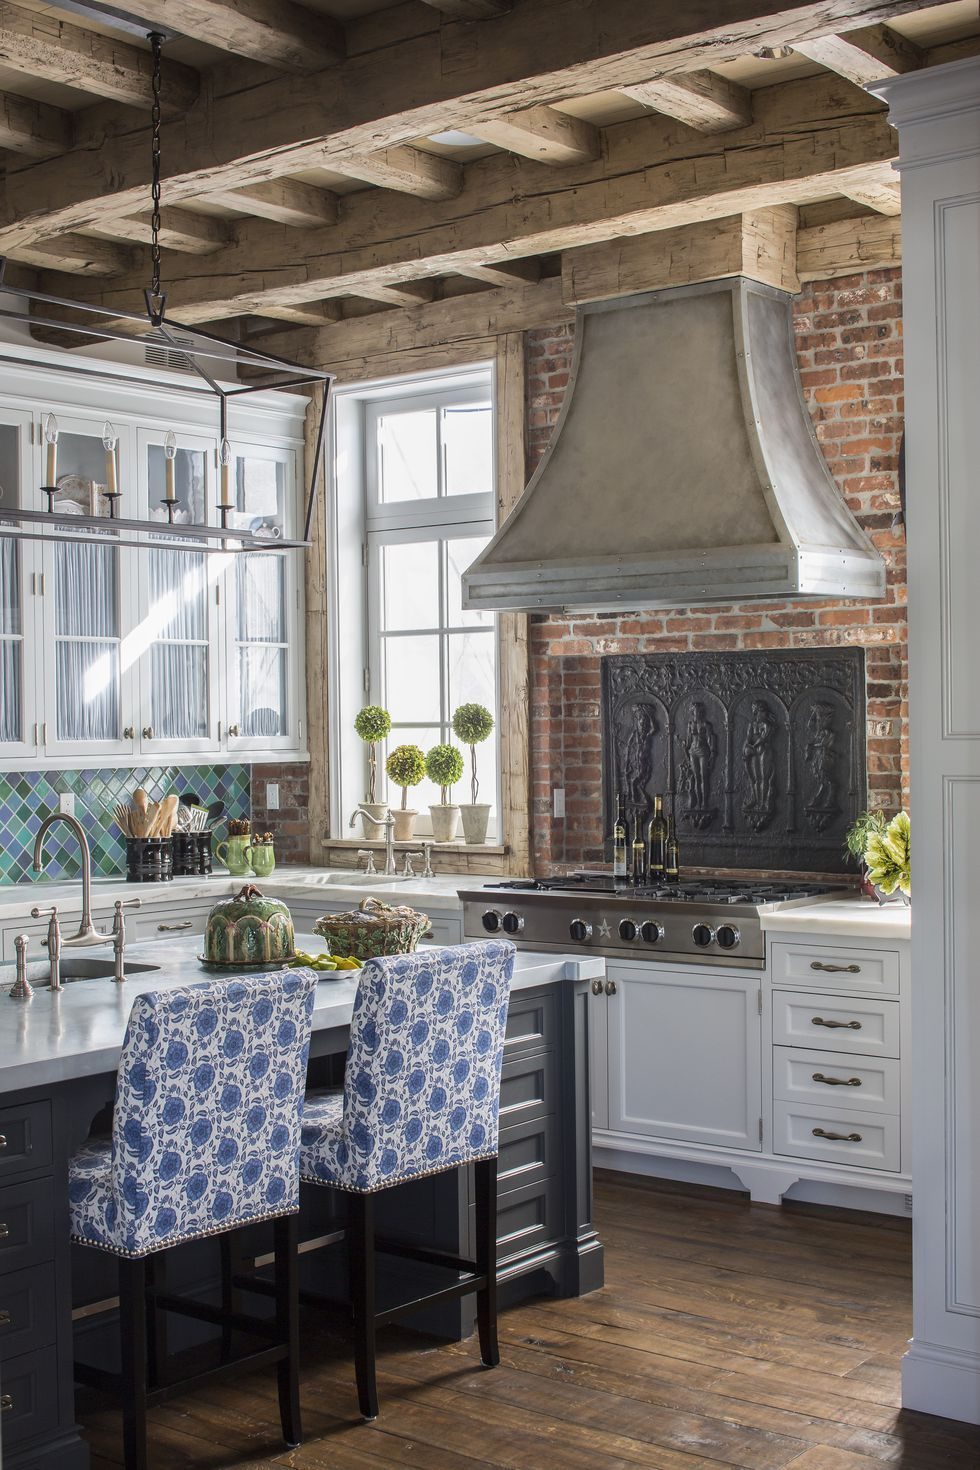 These Cozy Bohemian Kitchens Will Inspire Your Next